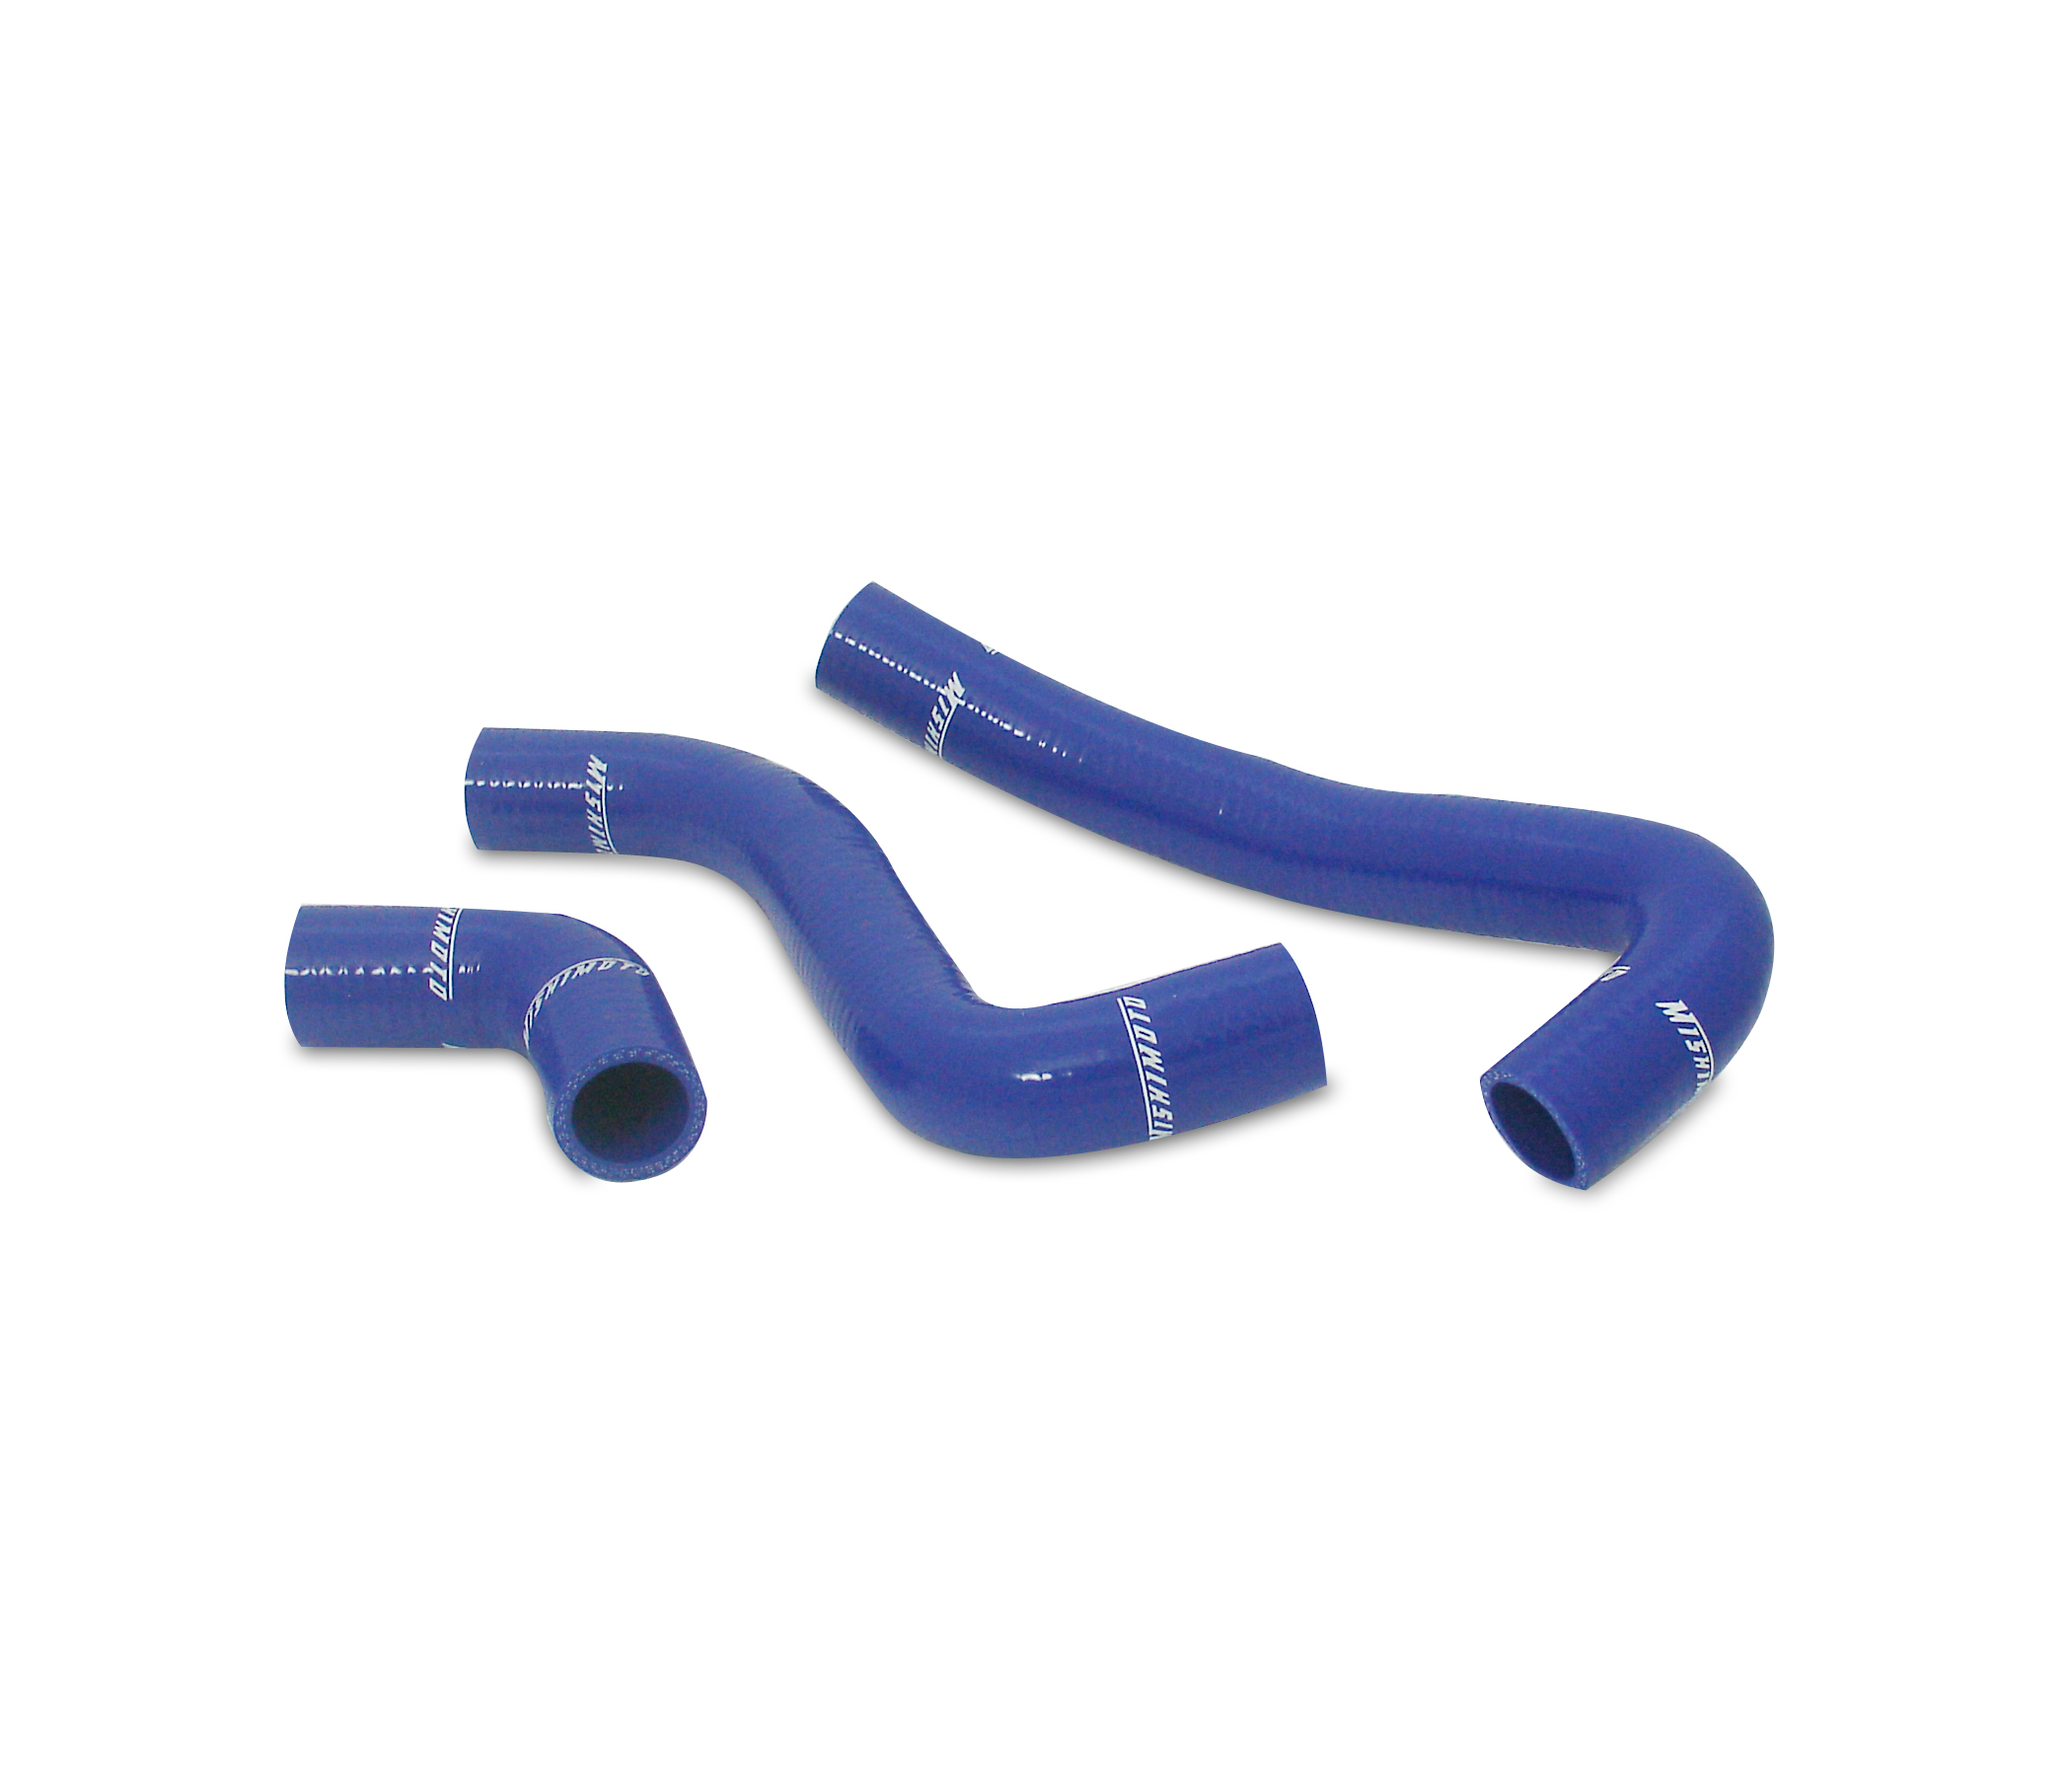 Scion XB  2004-2007 Mishimoto Silicone Radiator Hose Kit - Blue